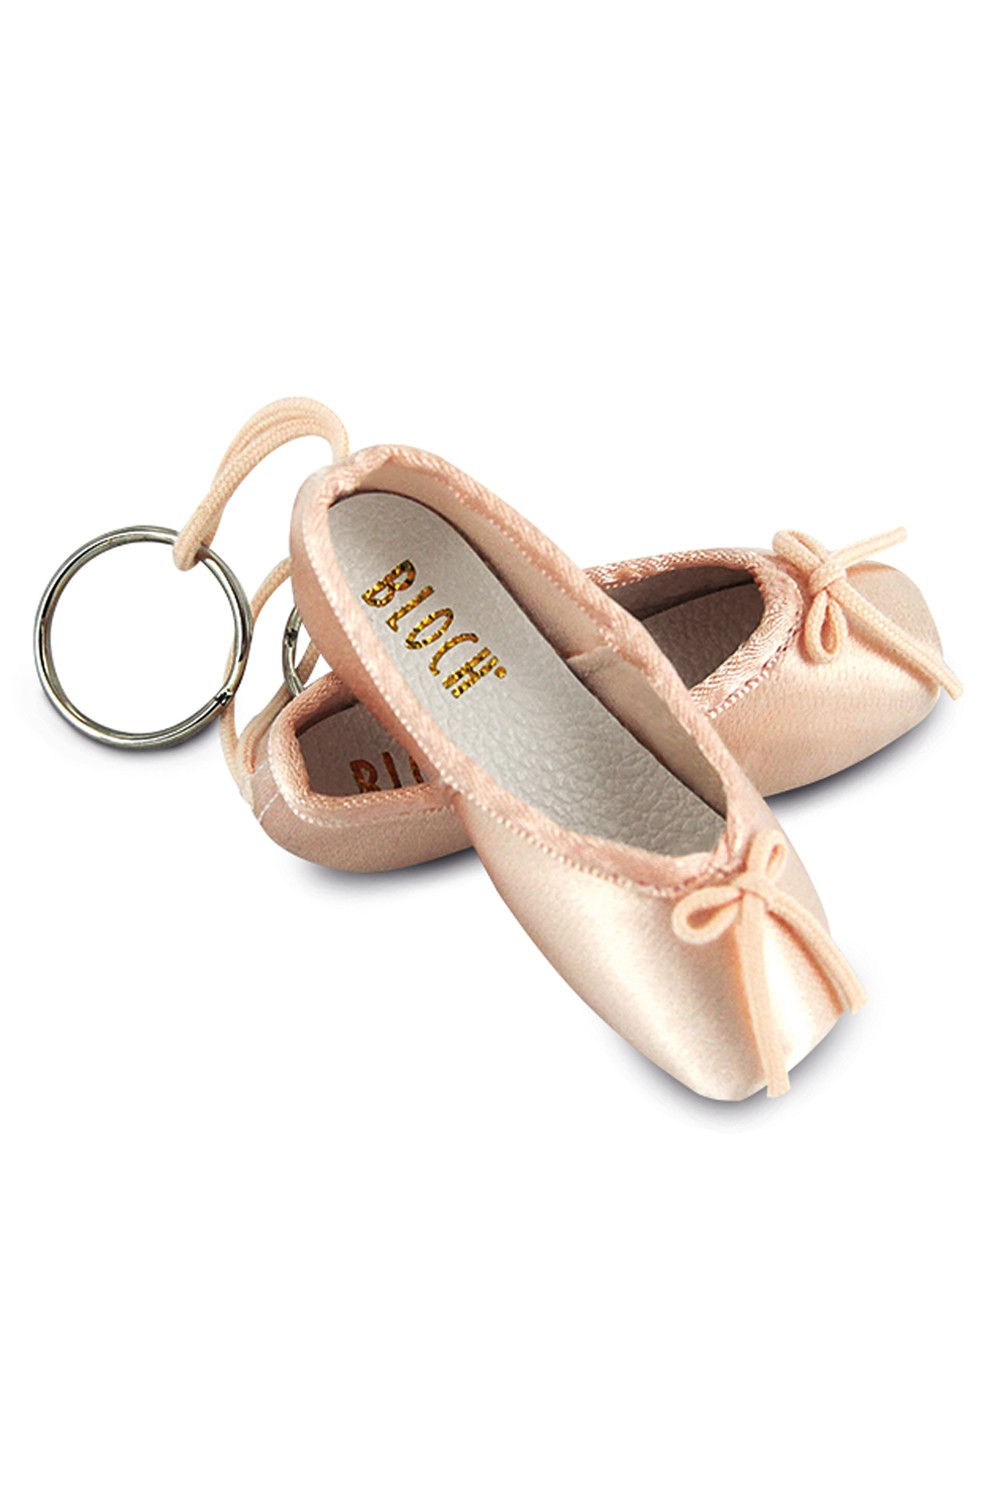 Portachiavi Con Scarpetta In Miniatura Dance Shoes Accessories